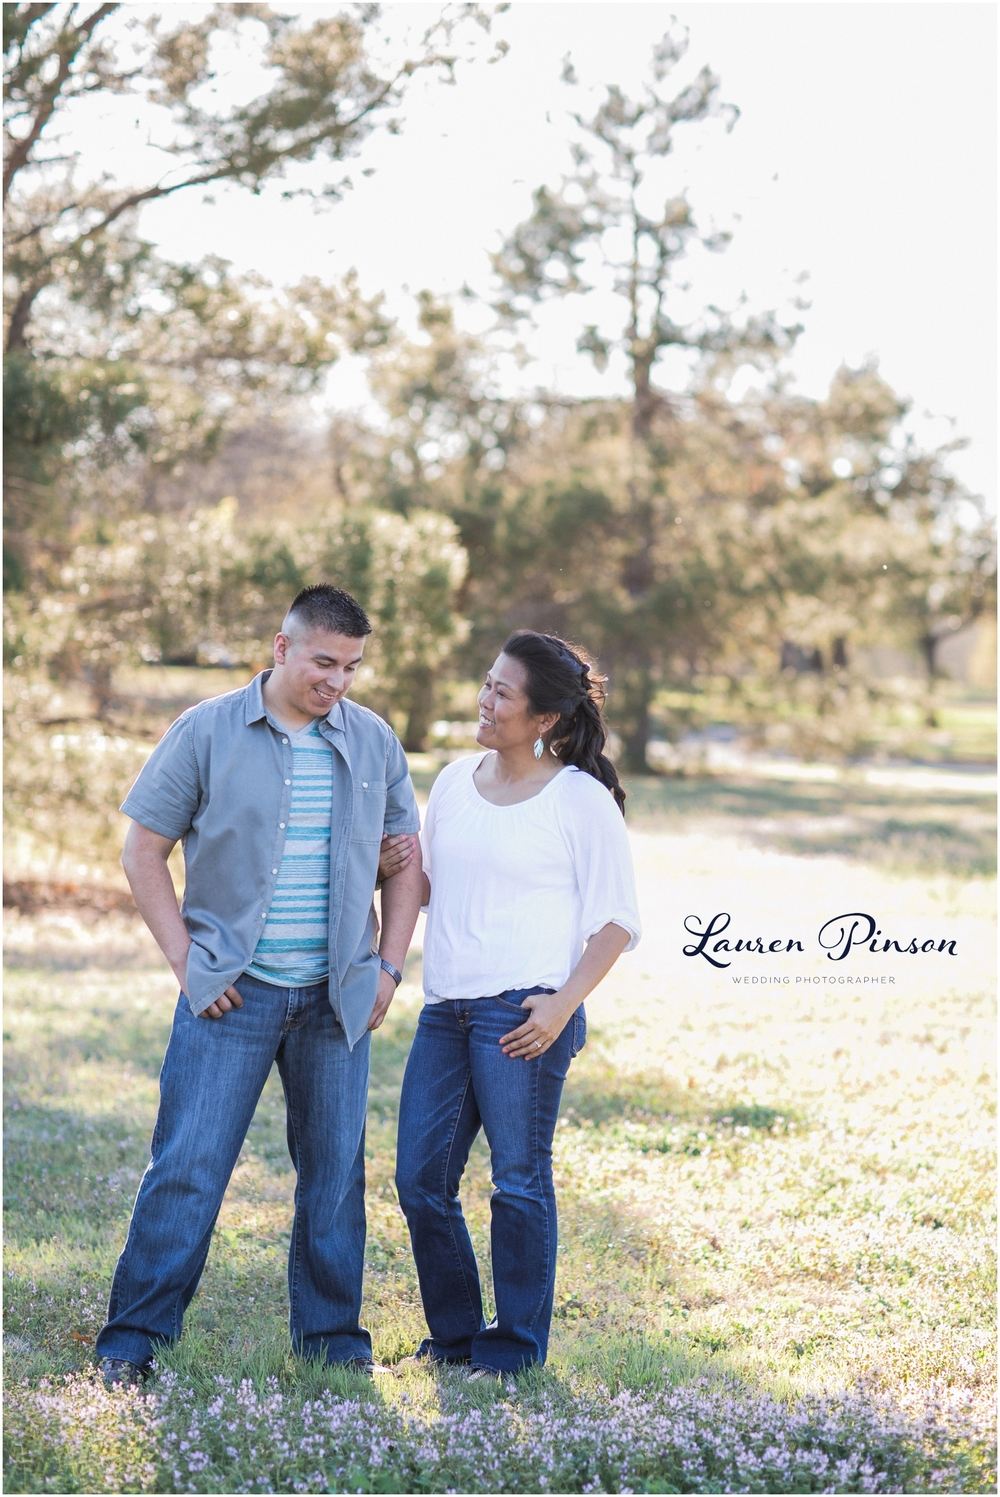 wichita-falls-wedding-photographer-engagement-session-texas-photography-oklahoma-engagement-wedding-photography_0617.jpg